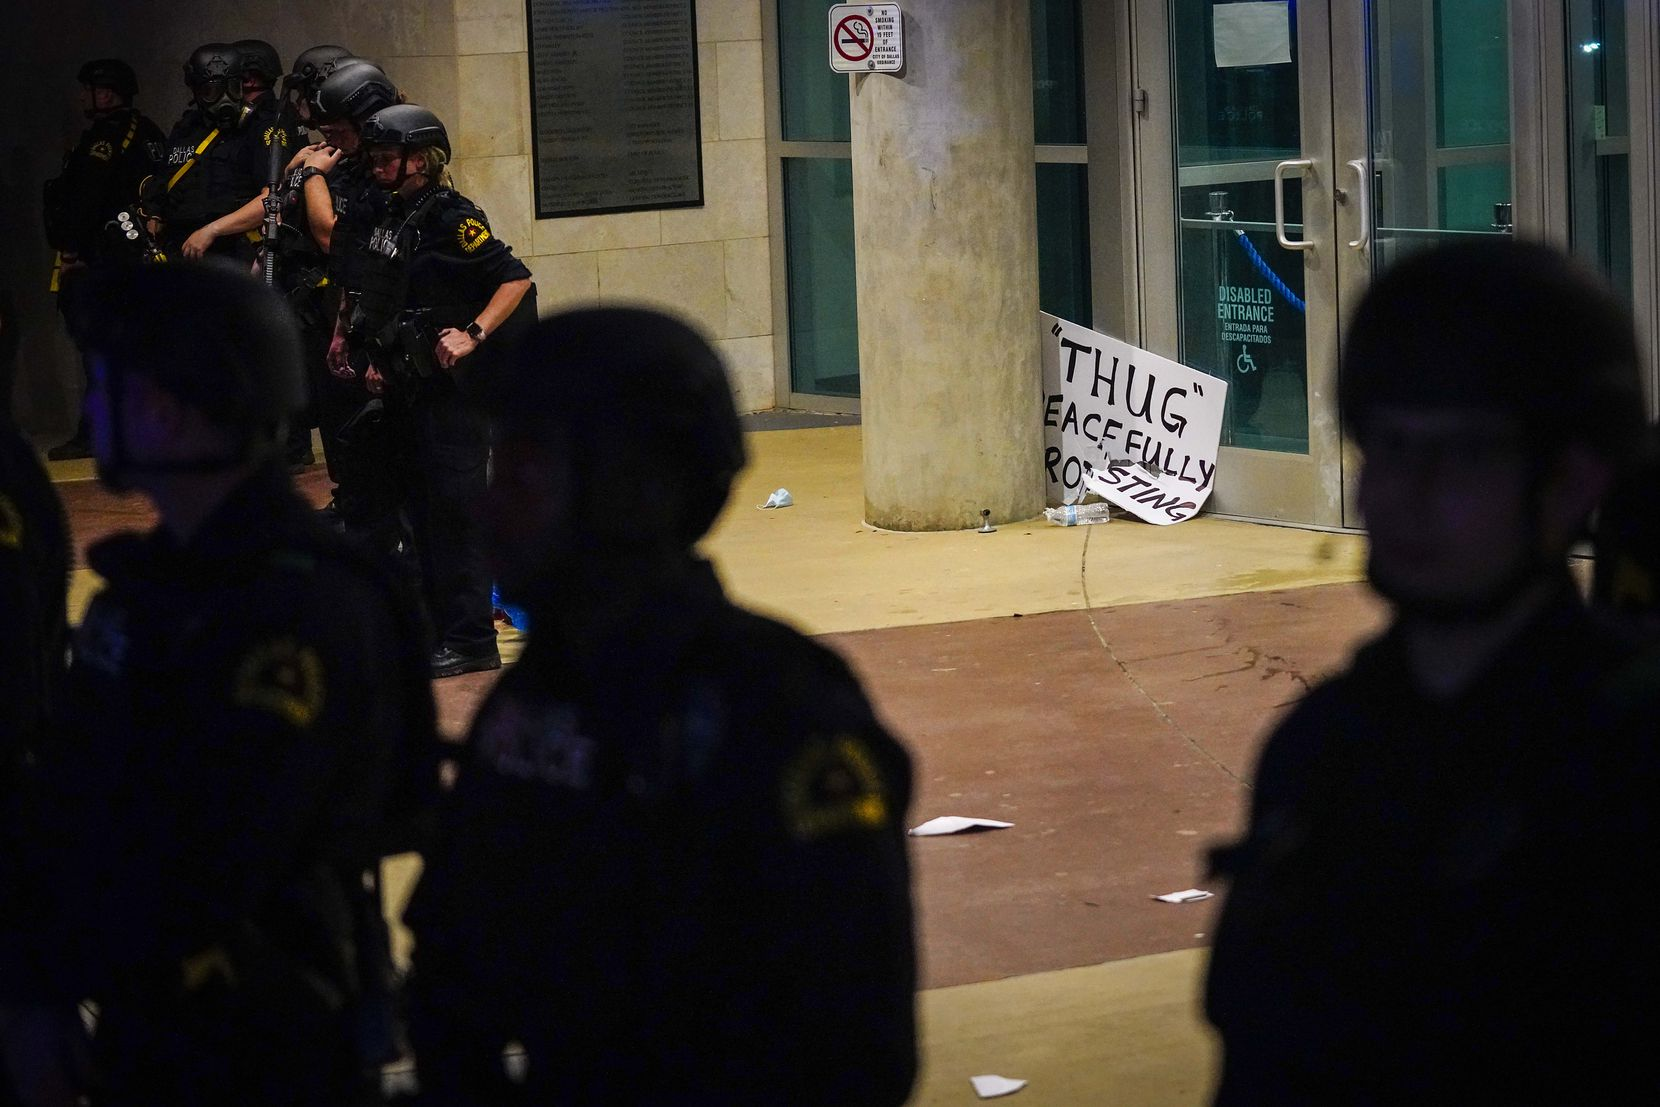 Dallas police form a line outside the front door of the the Dallas Police Headquarters as discarded signs pile up at the entrance during a protest against police brutality on Friday, May 29, 2020, in Dallas.